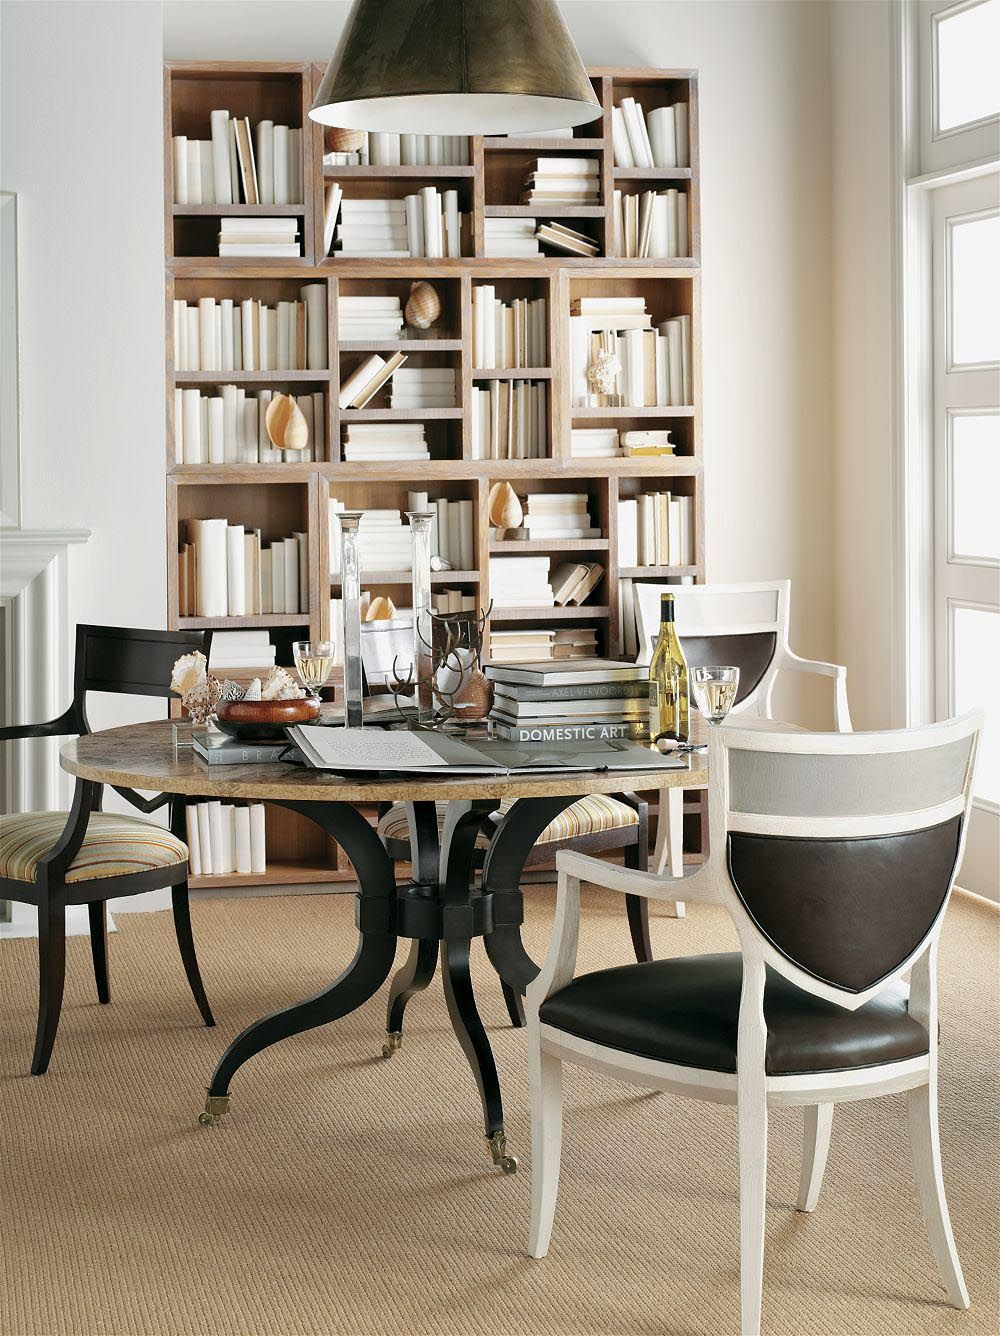 Different Bookshelves bookshelf with different size cubbies | hickory chair #hpmkt